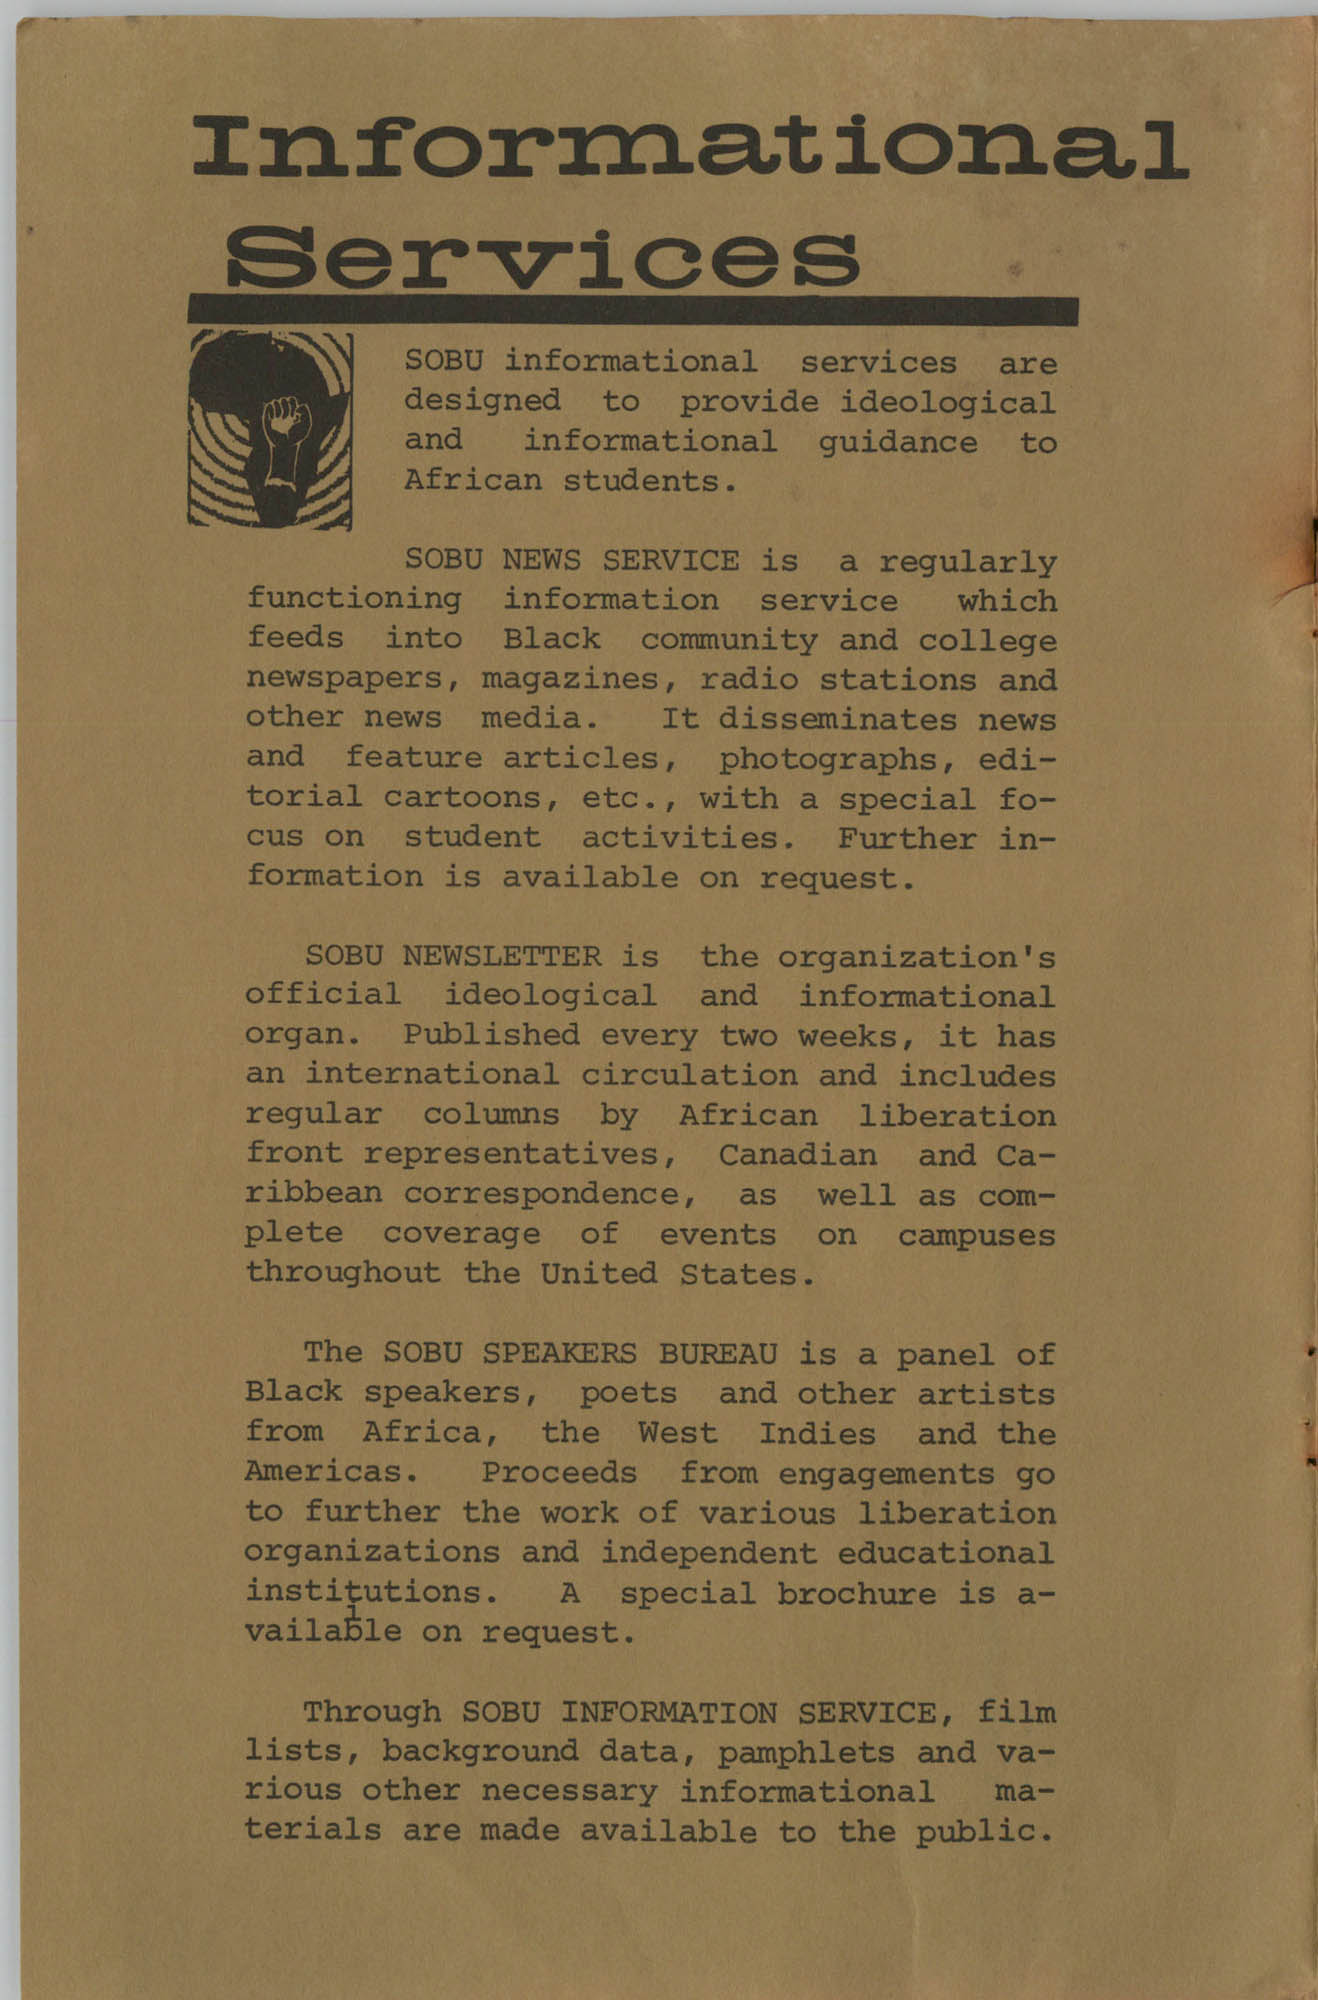 Work for African Liberation, Page 10